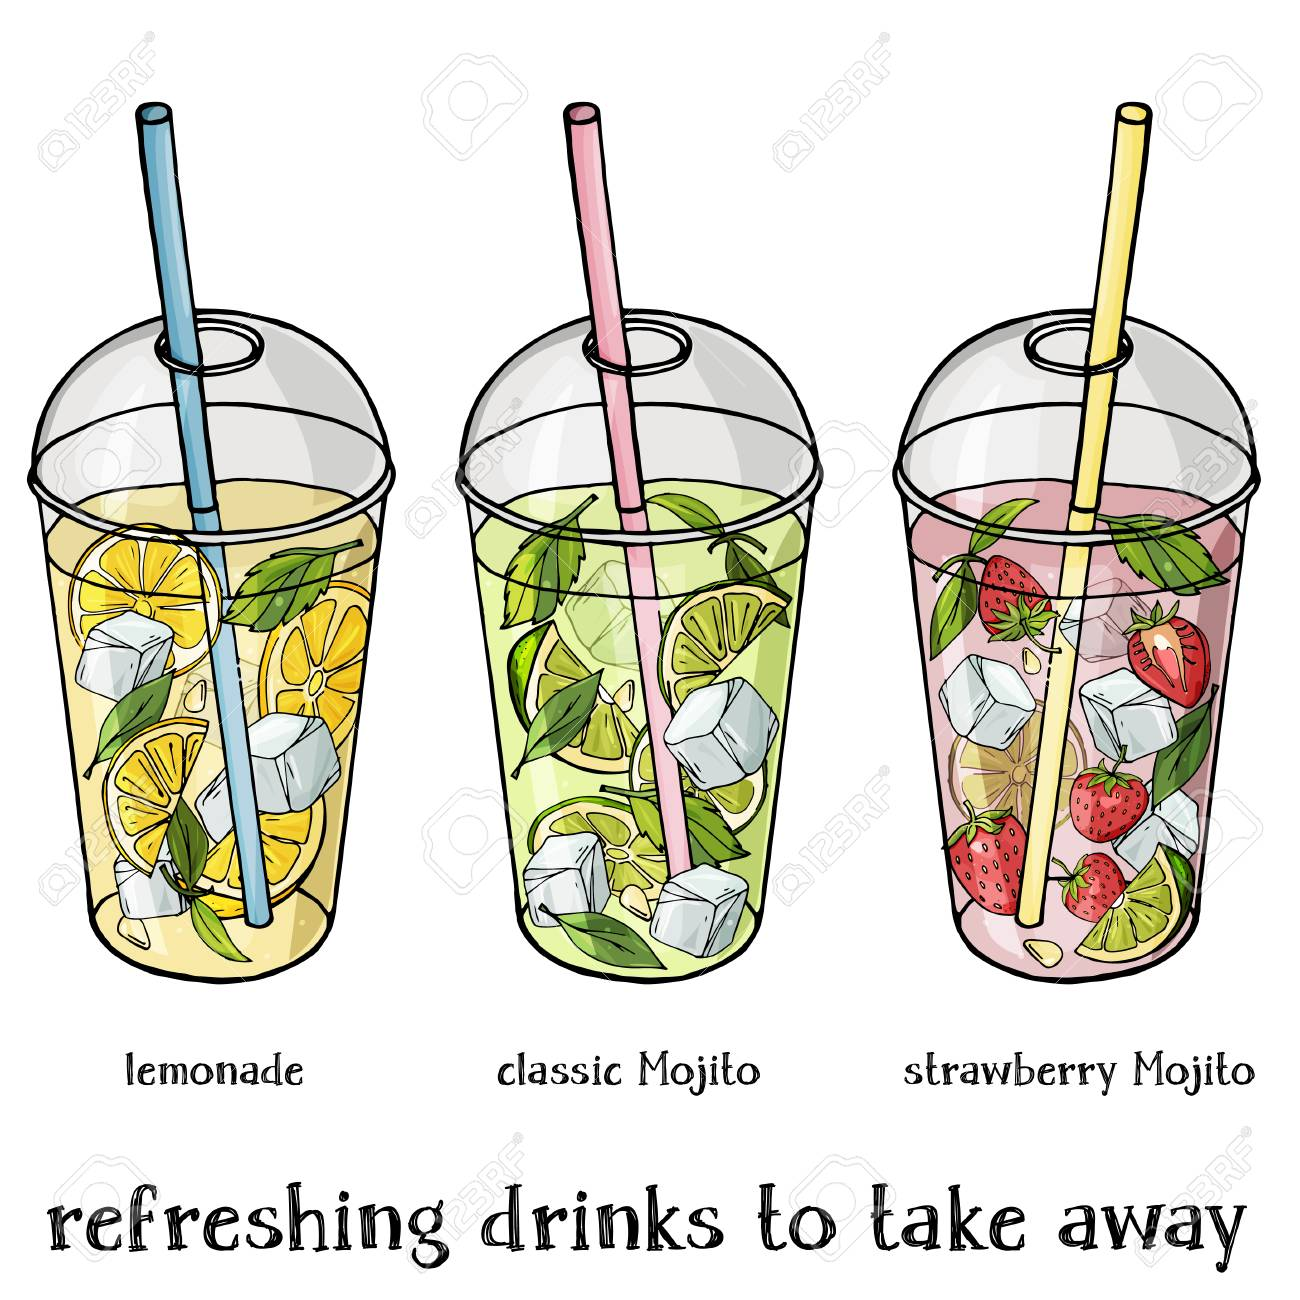 Set of non-alcoholic summer drinks in a plastic Cup to take away